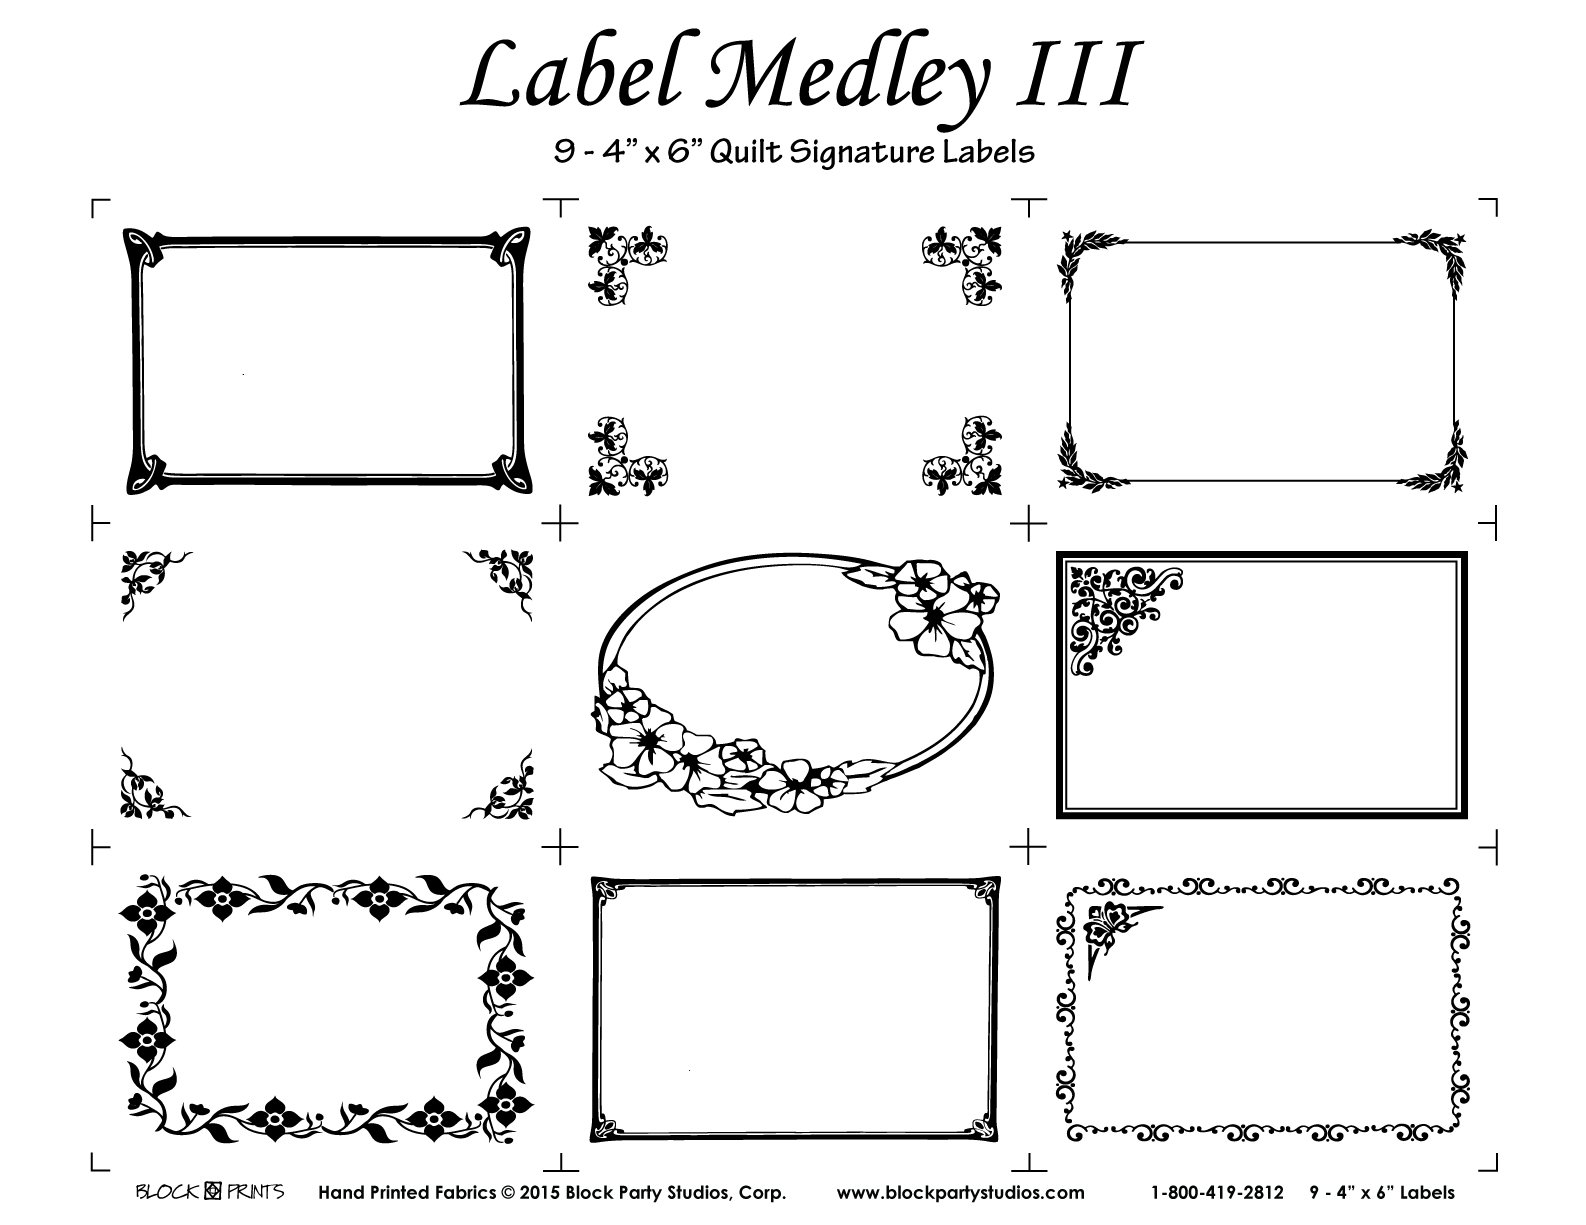 Label Medley III